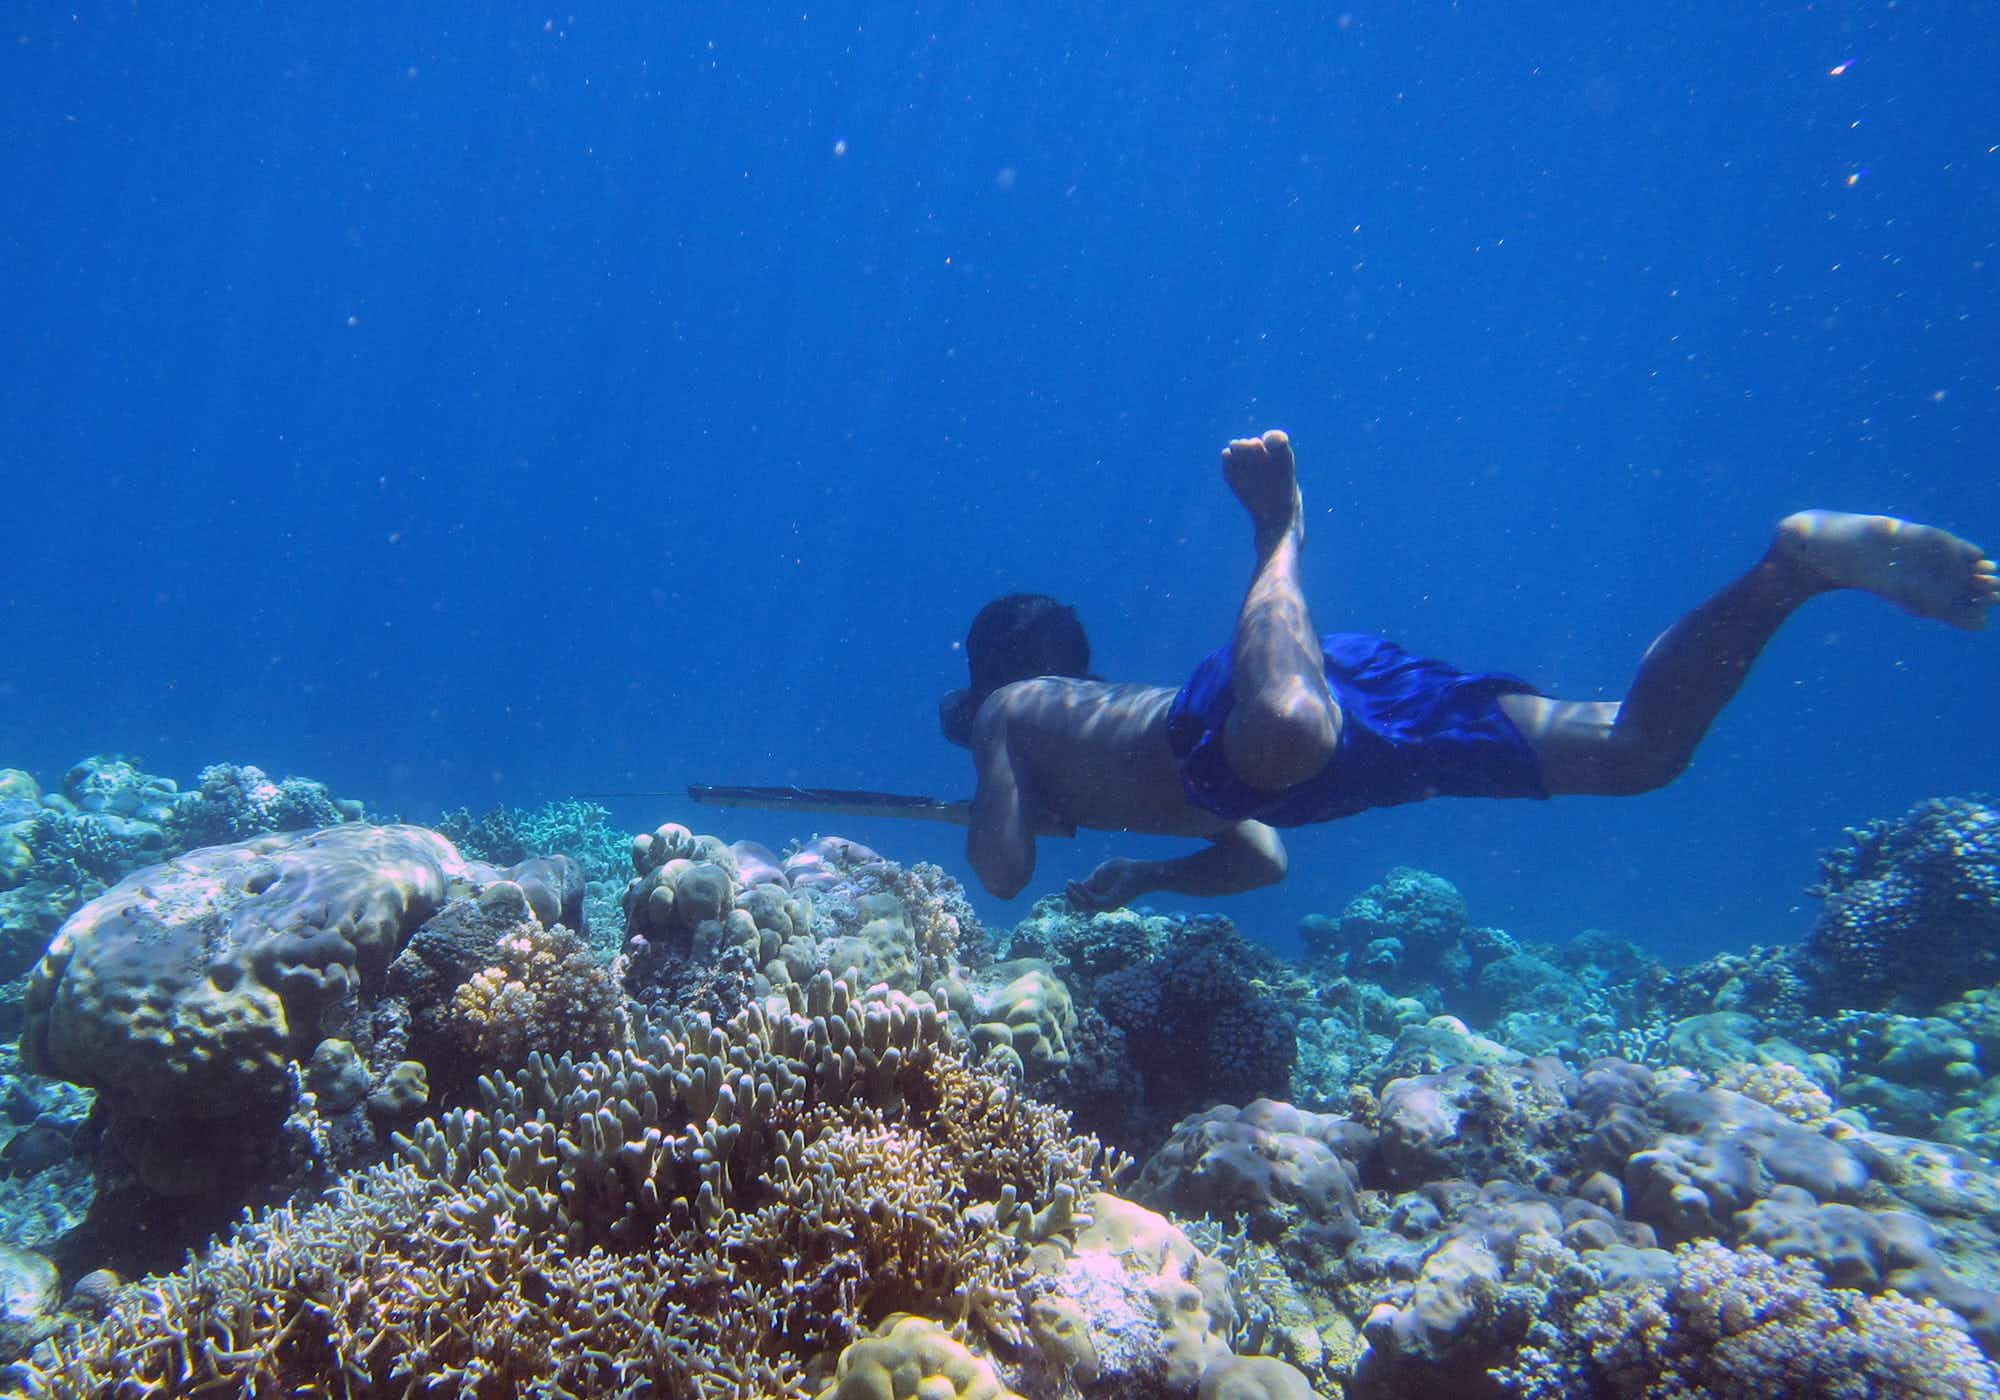 The deep diving secrets of the Bajau Sea Nomads have been unlocked